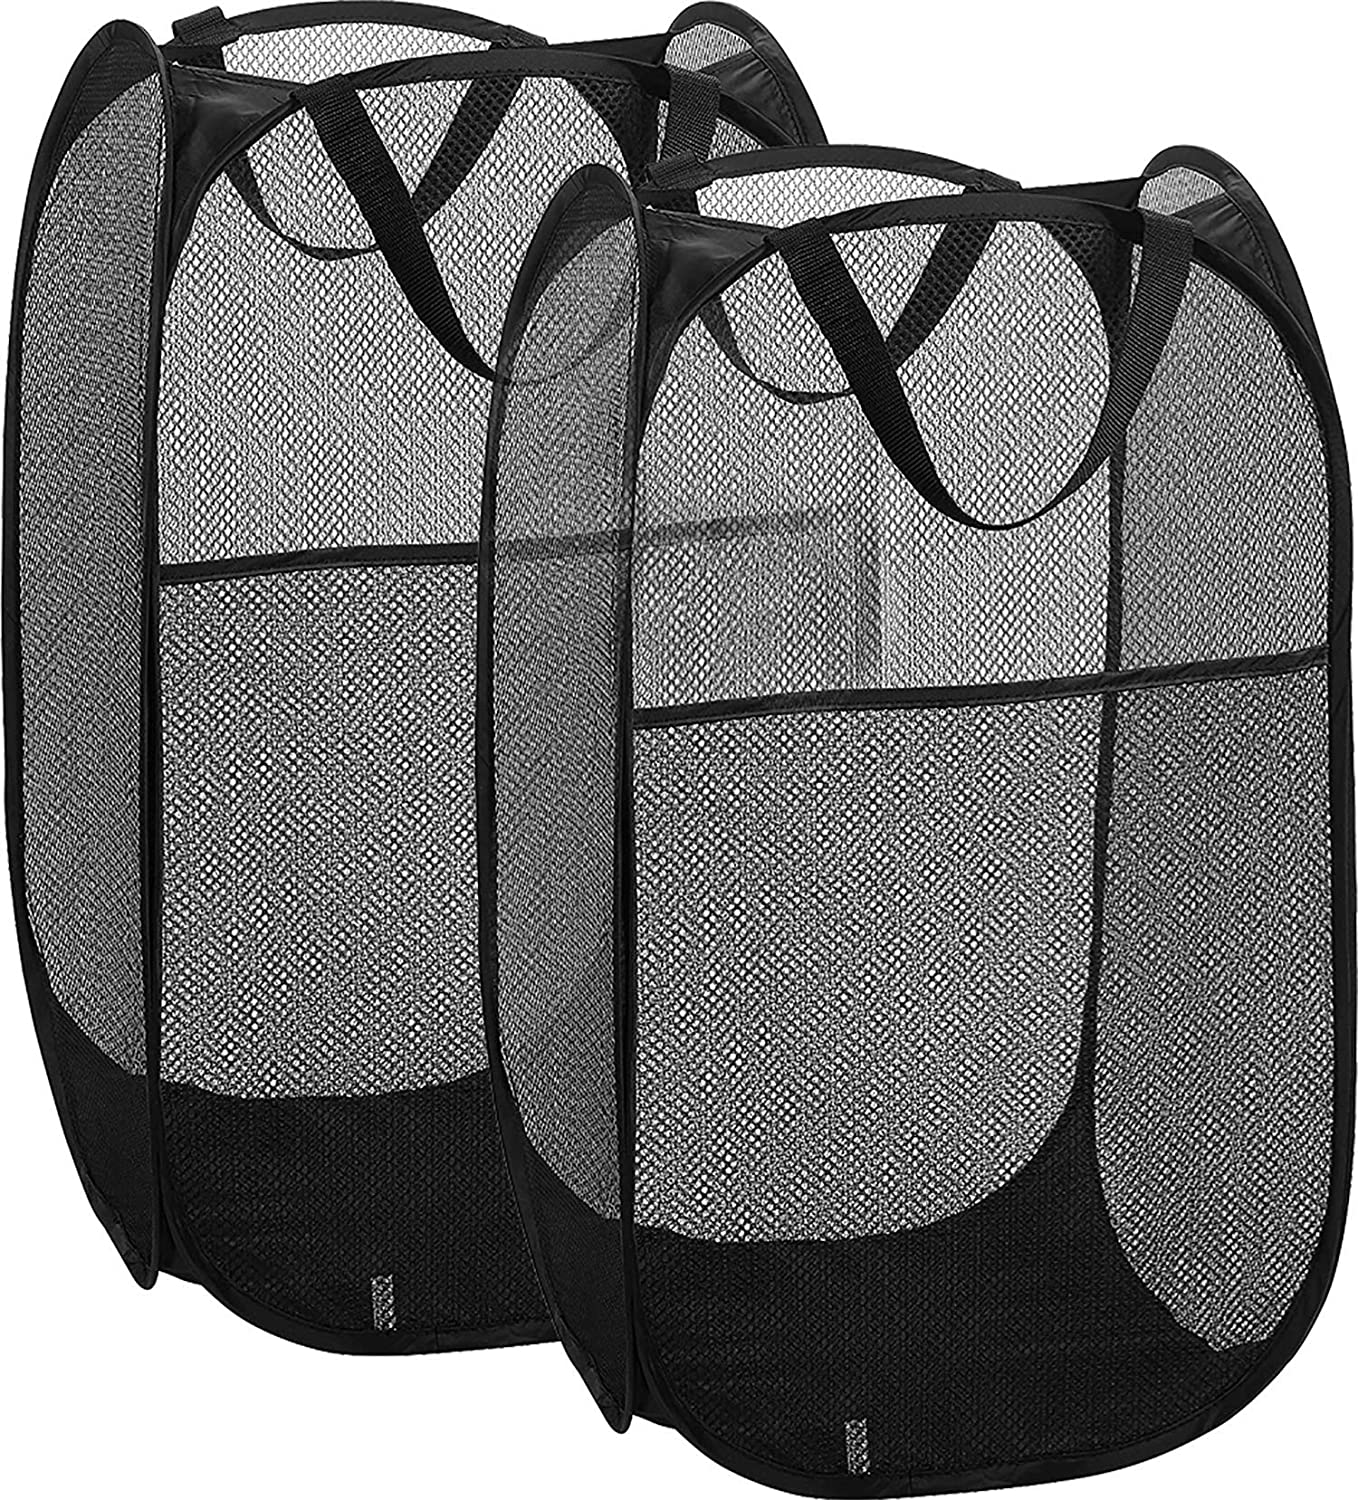 Simplized 2 Pack Popup Laundry Hamper, Foldable Pop-up Mesh Hamper Dirty Clothes Basket w Carry Handles (2)